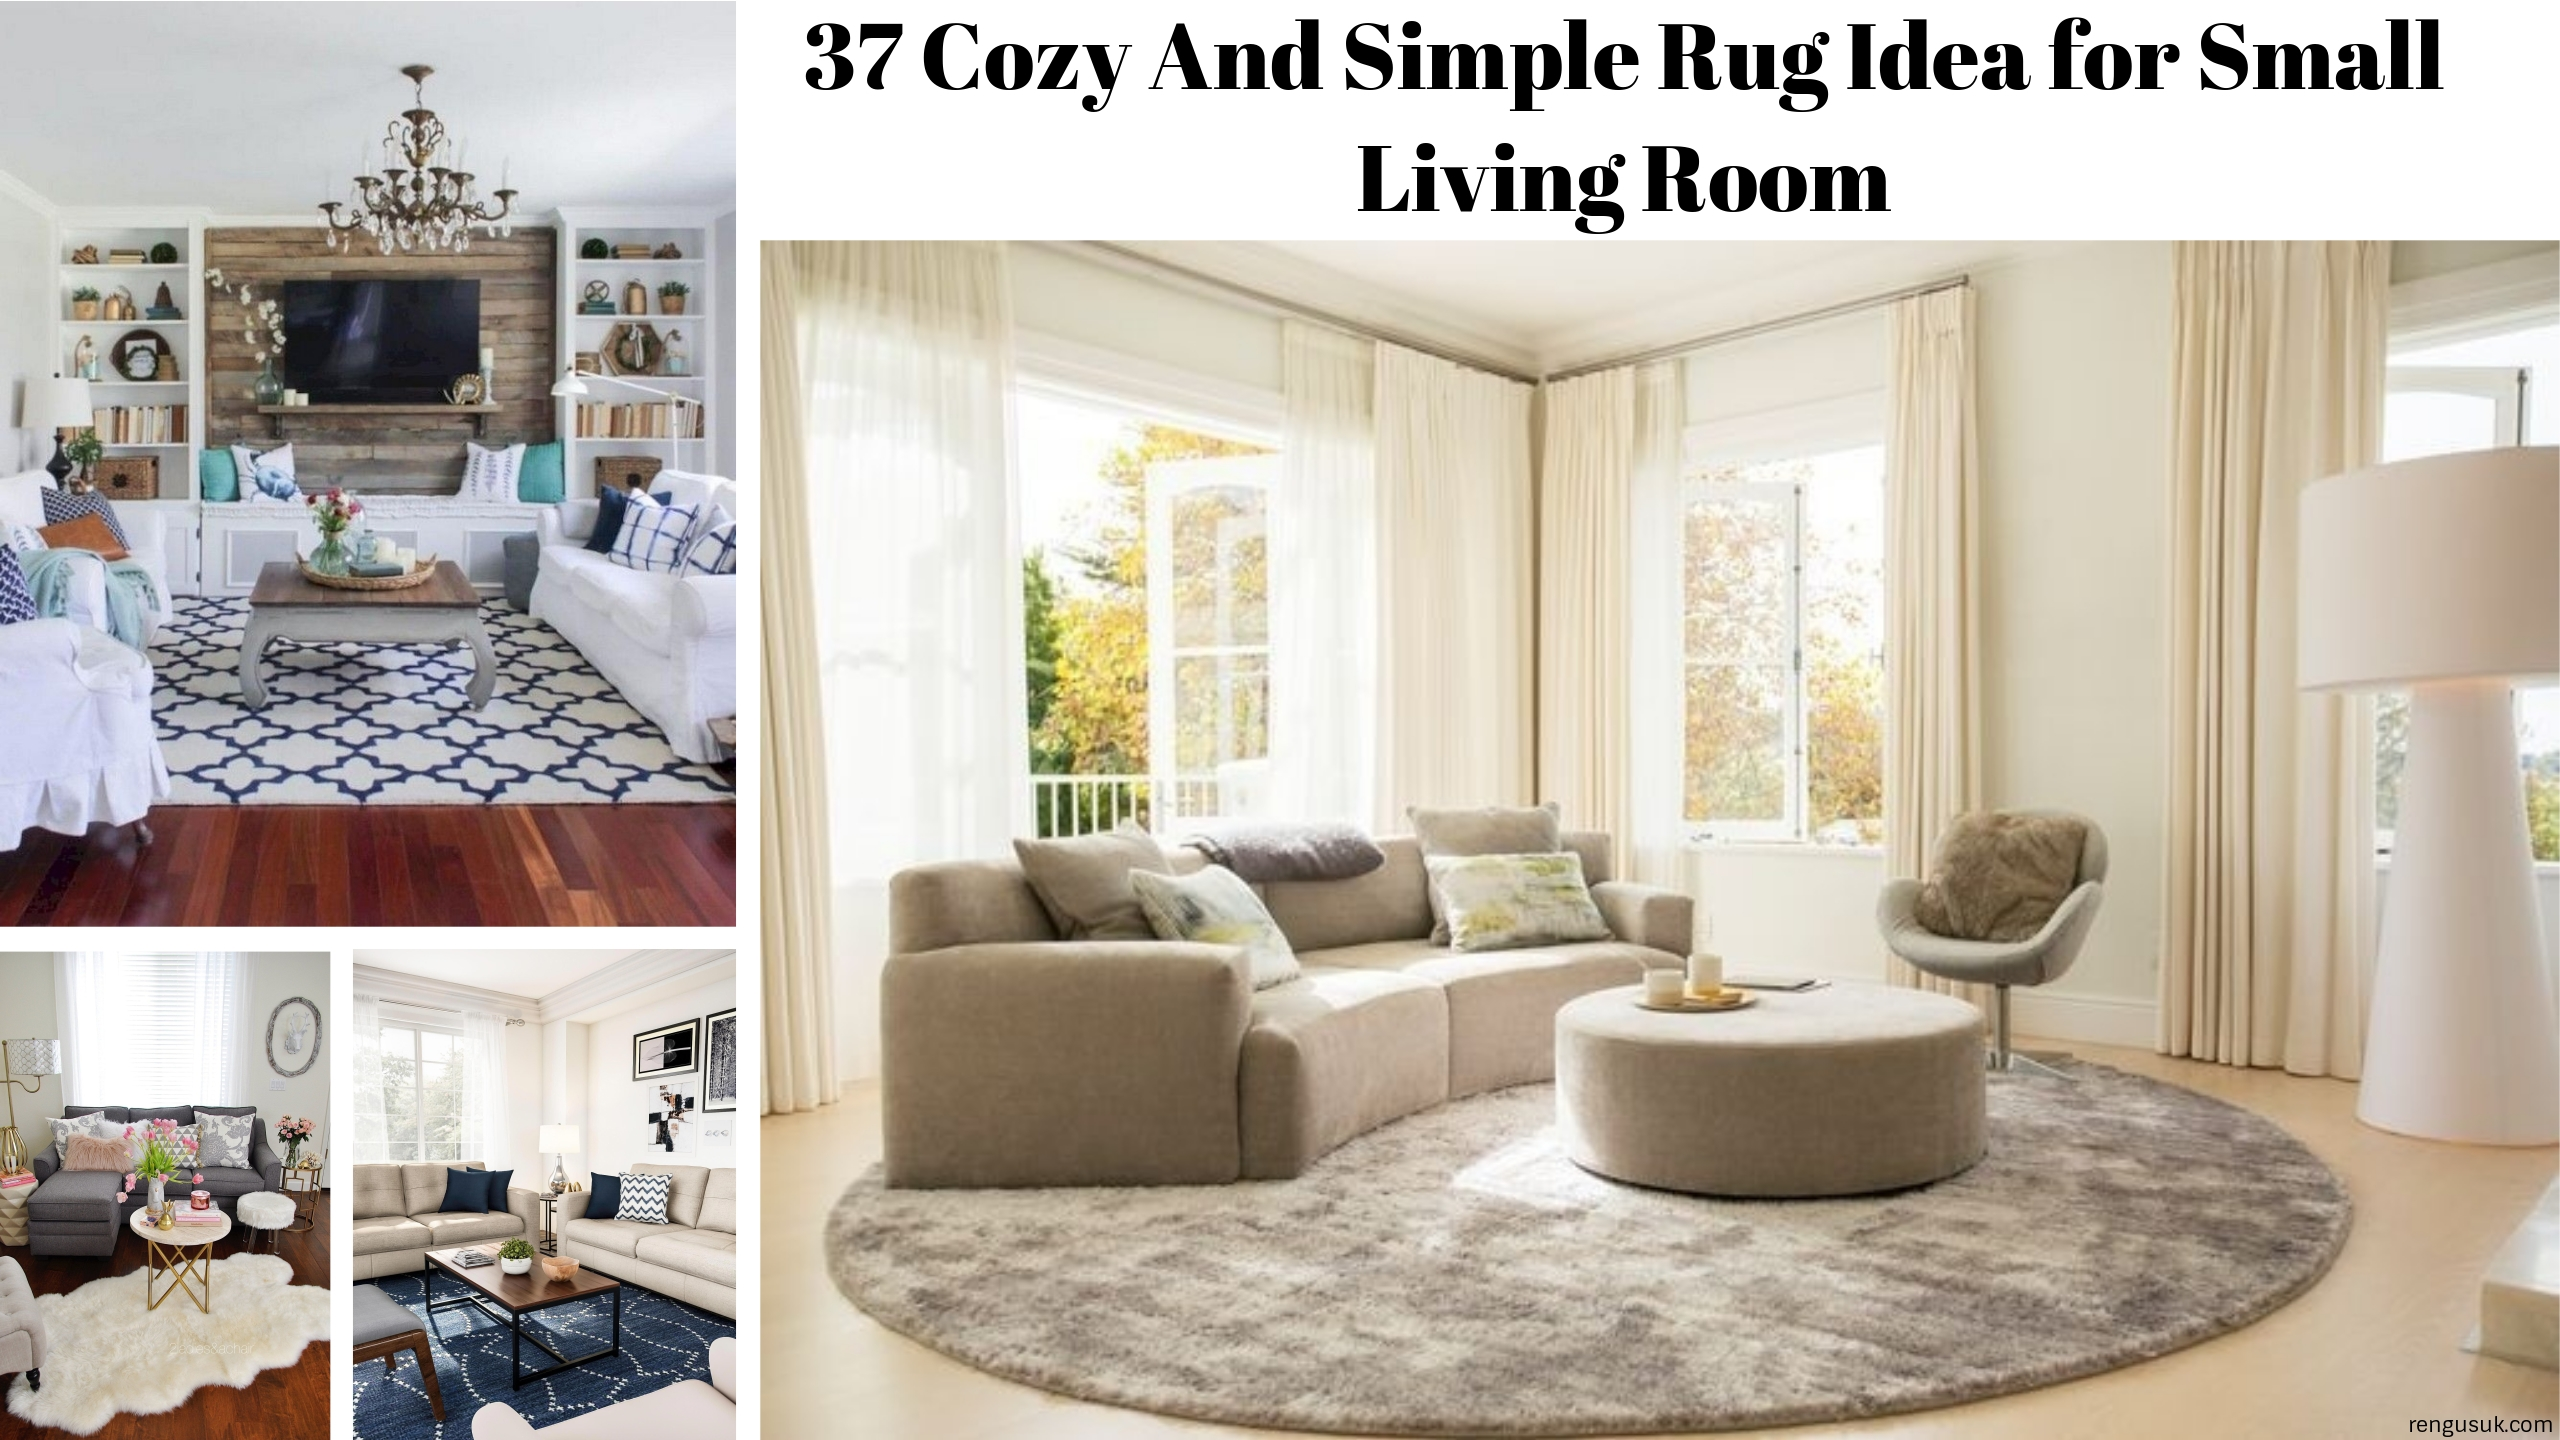 37 Cozy And Simple Rug Idea For Small Living Room Rengusuk Com